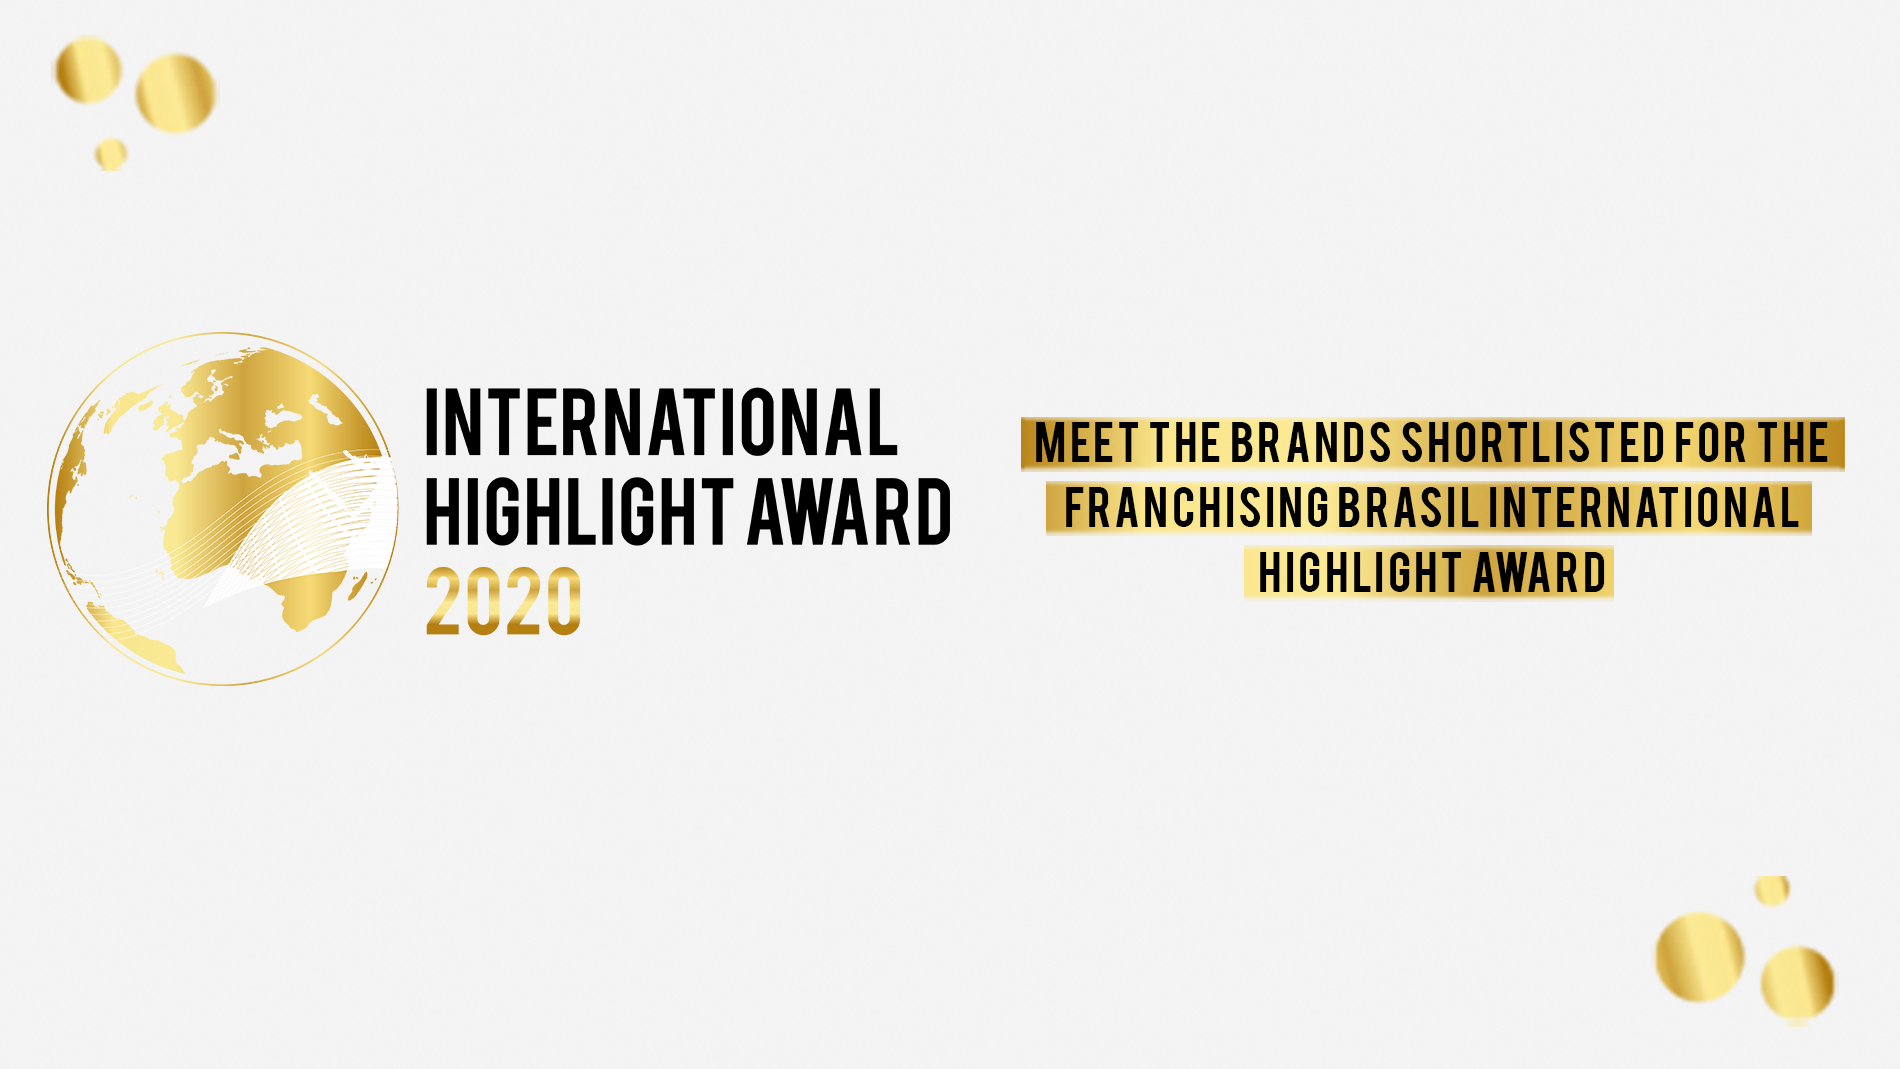 Meet the shortlisted brands nominated for the International Highlight Award